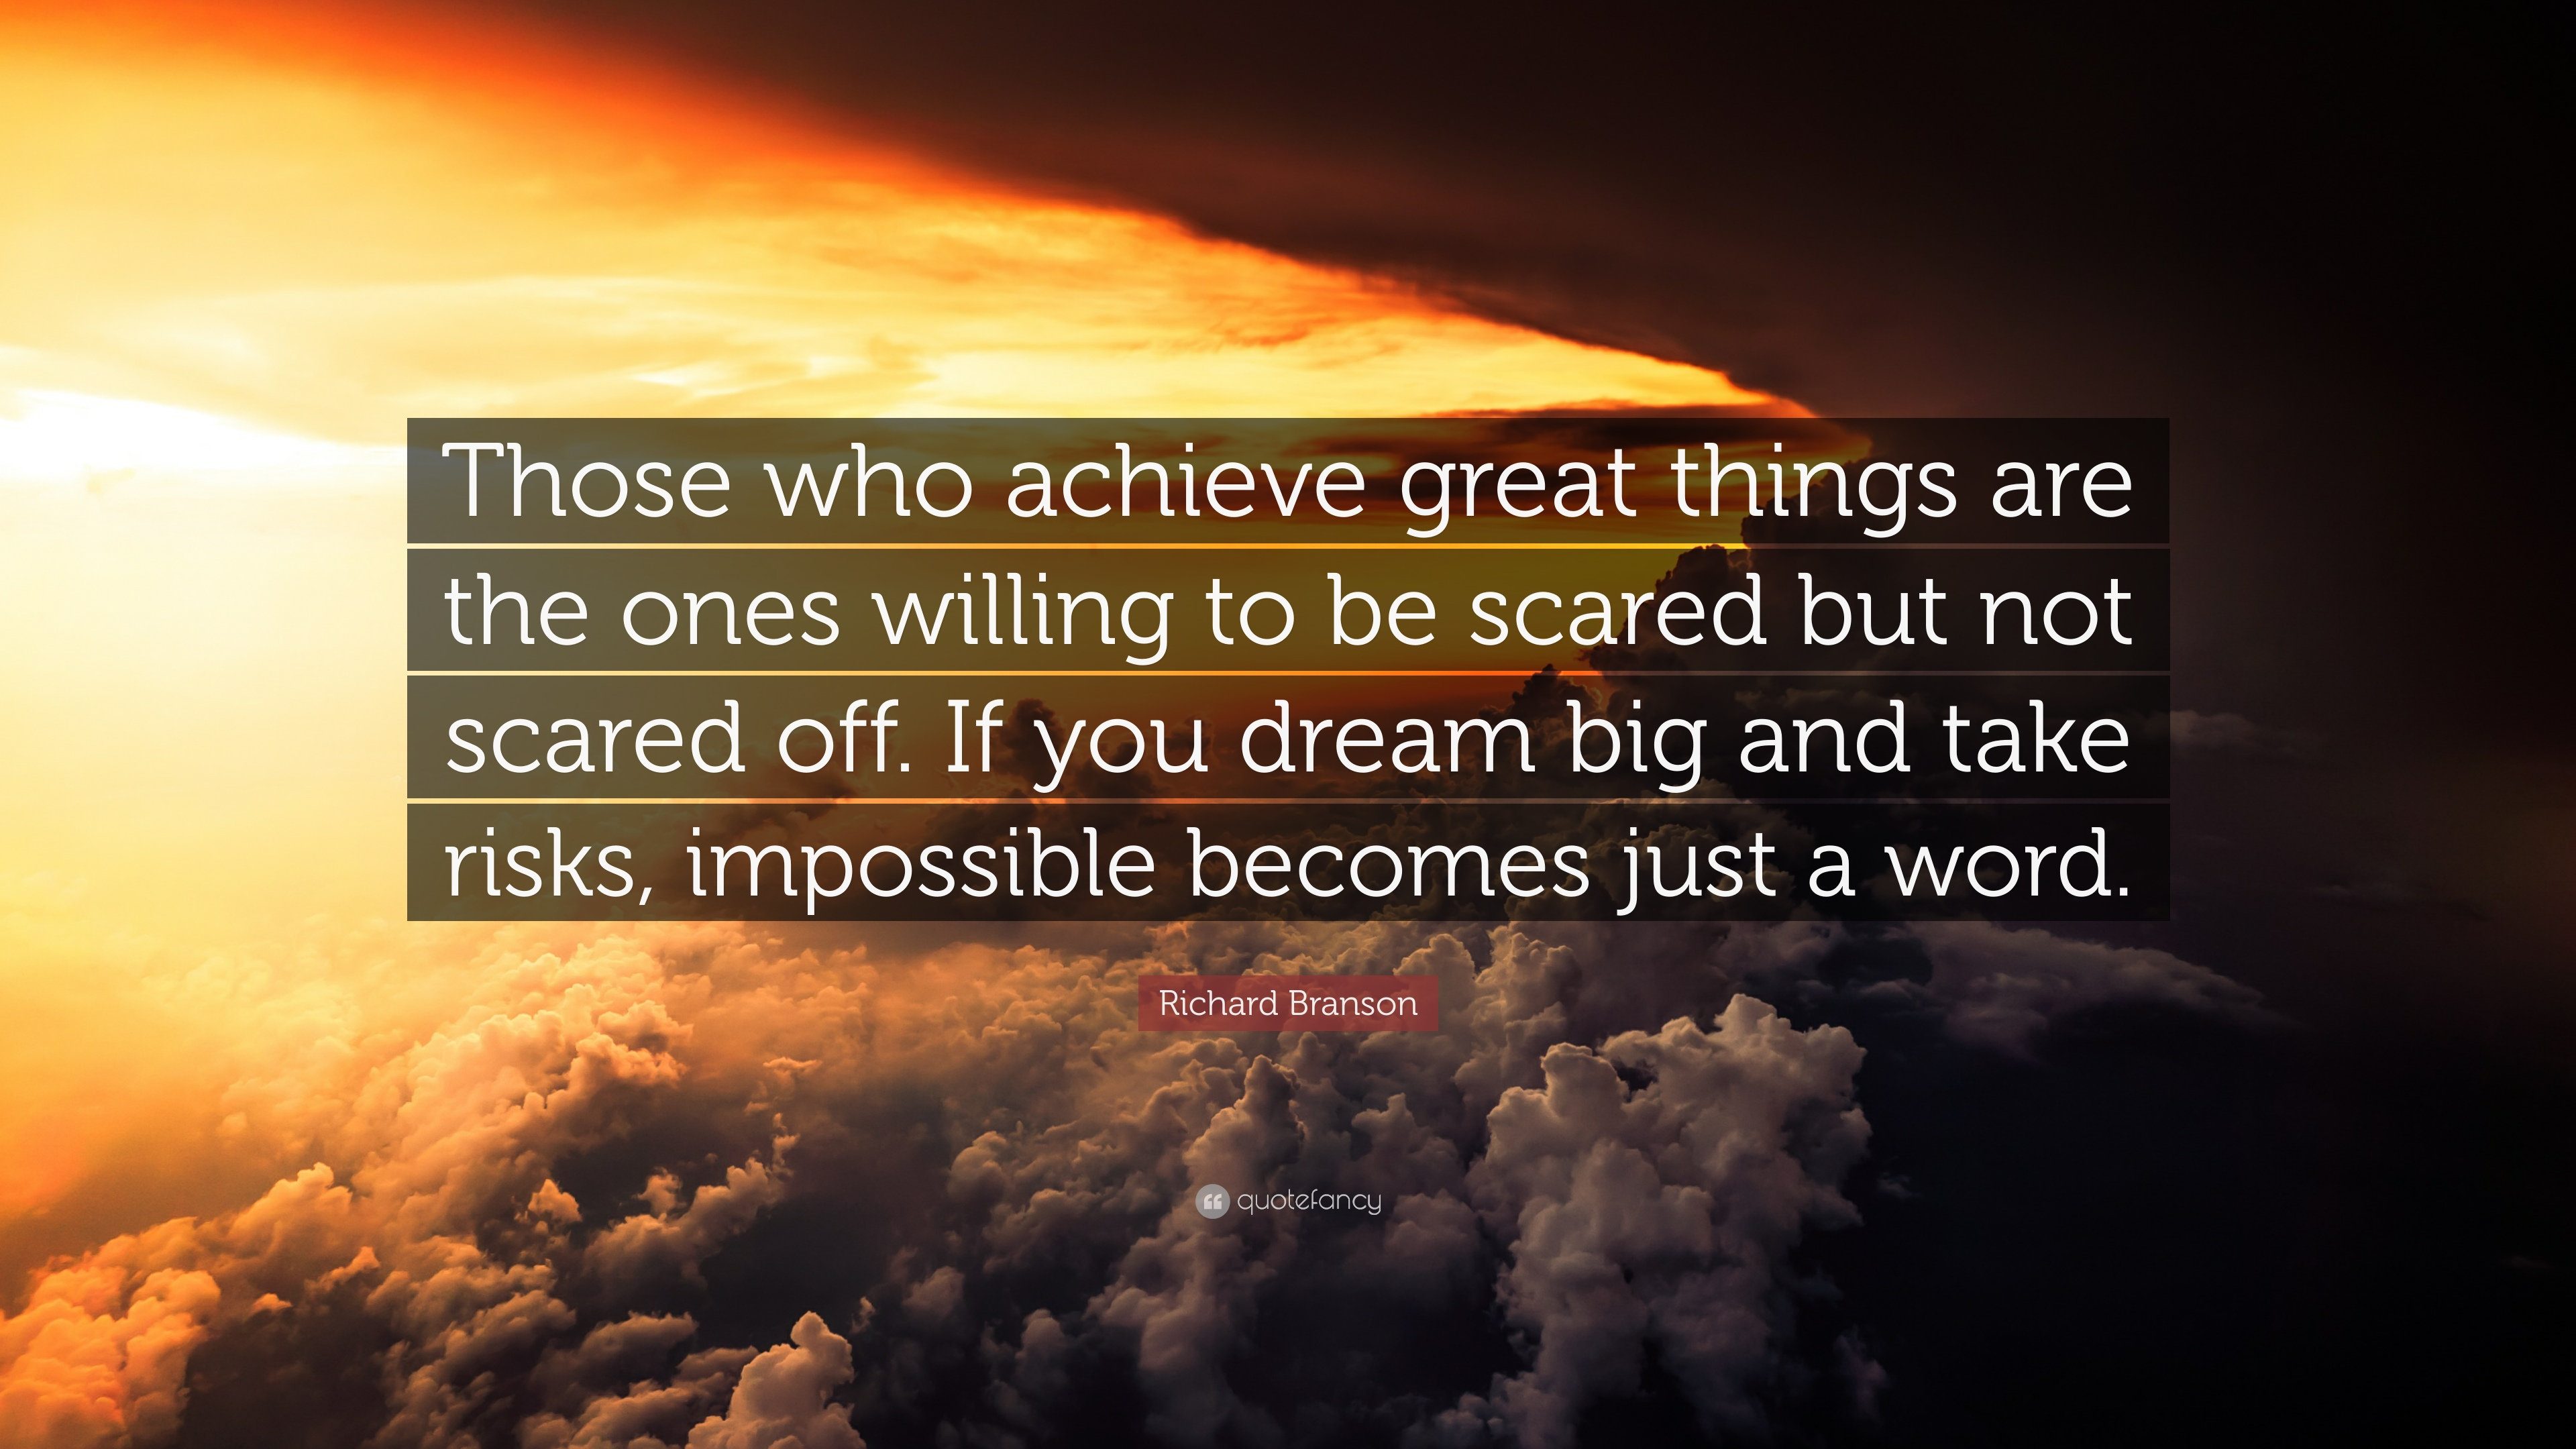 Superior Richard Branson Quote: U201cThose Who Achieve Great Things Are The Ones Willing  To Be